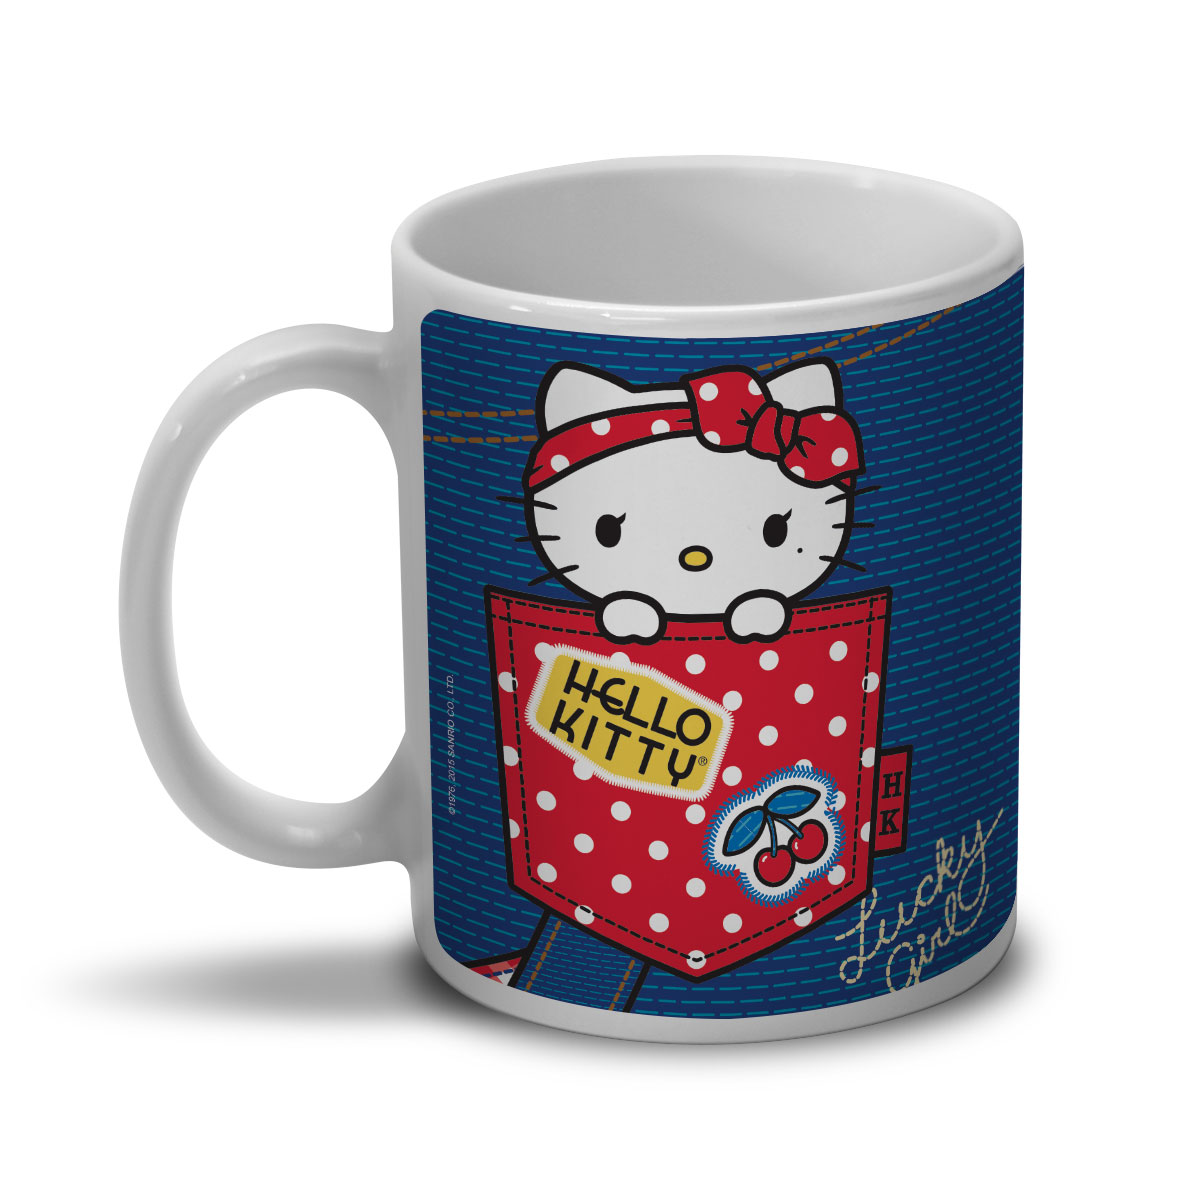 Caneca Hello Kitty Retro Denim